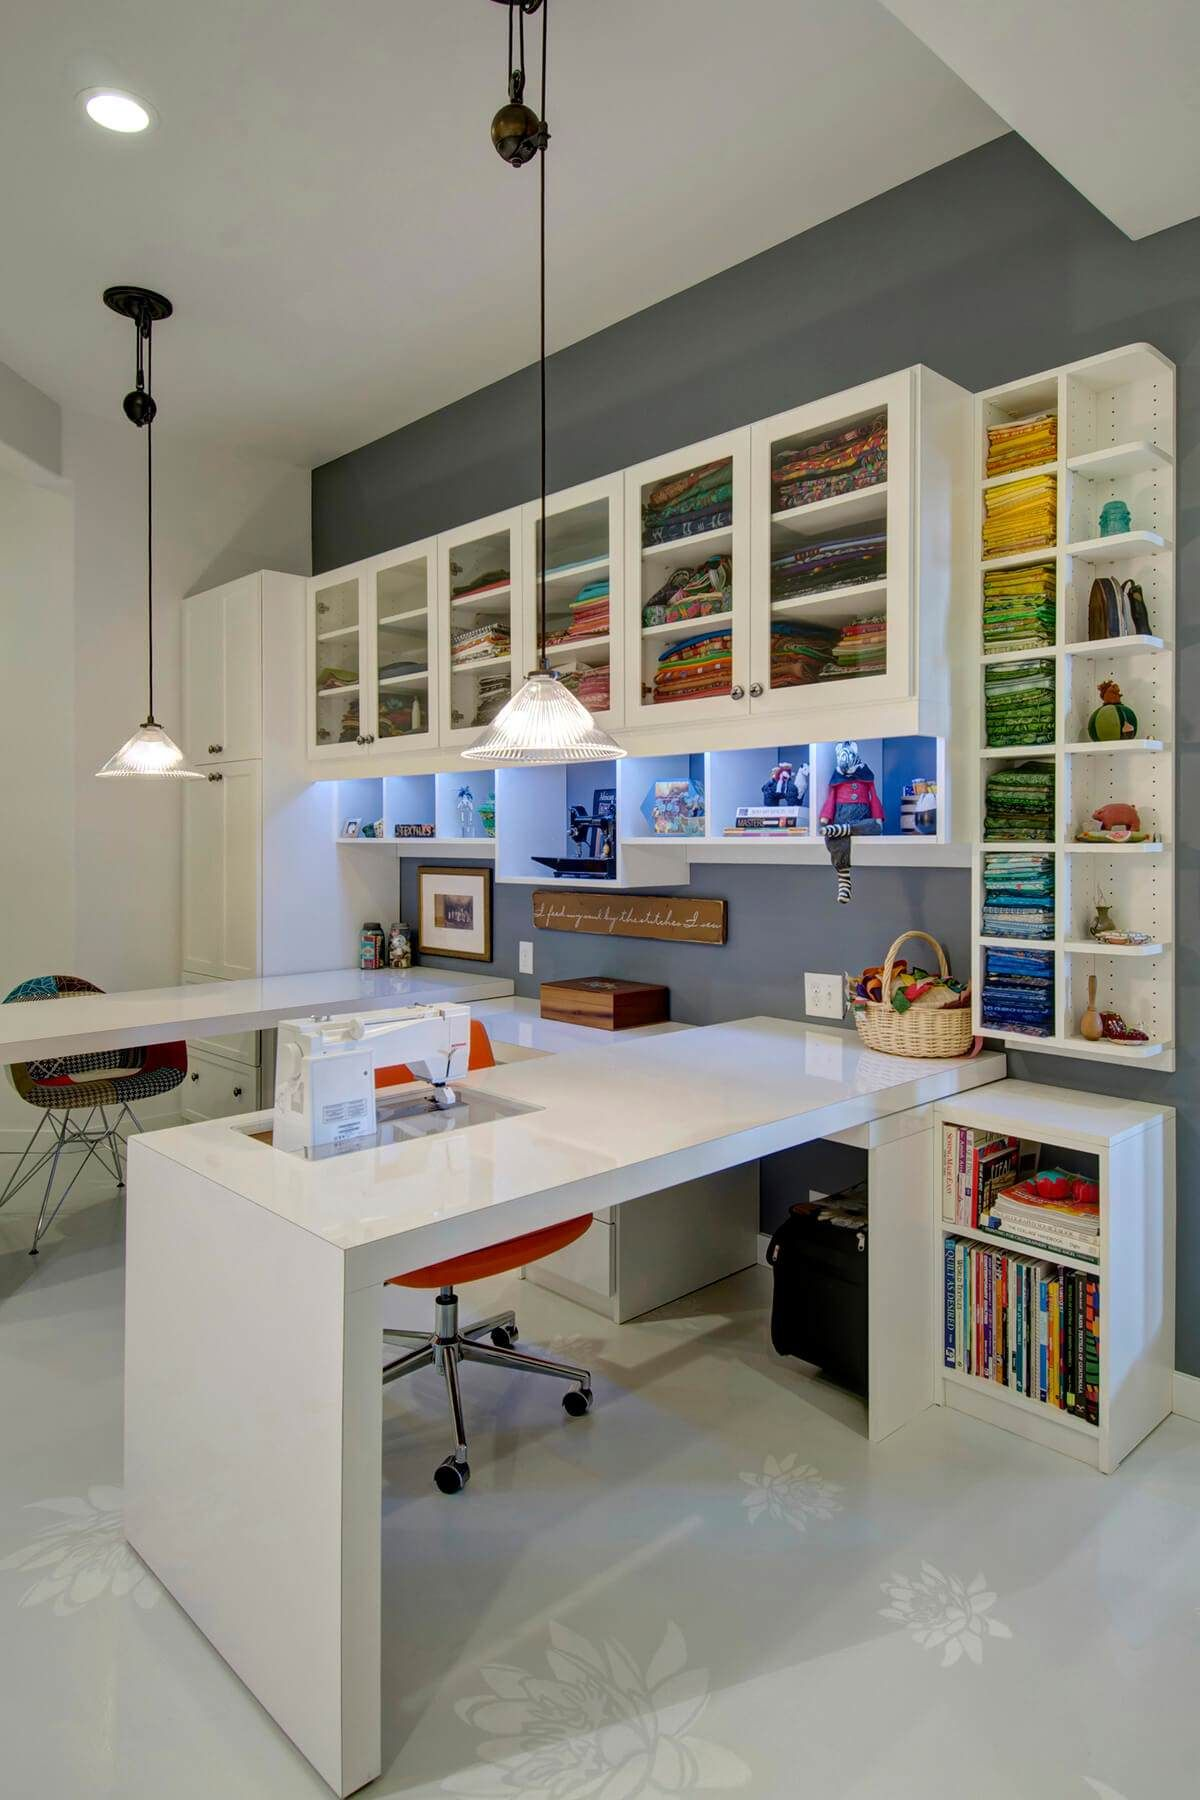 23 Craft Room Design Ideas Creative Rooms Decorating Ideas